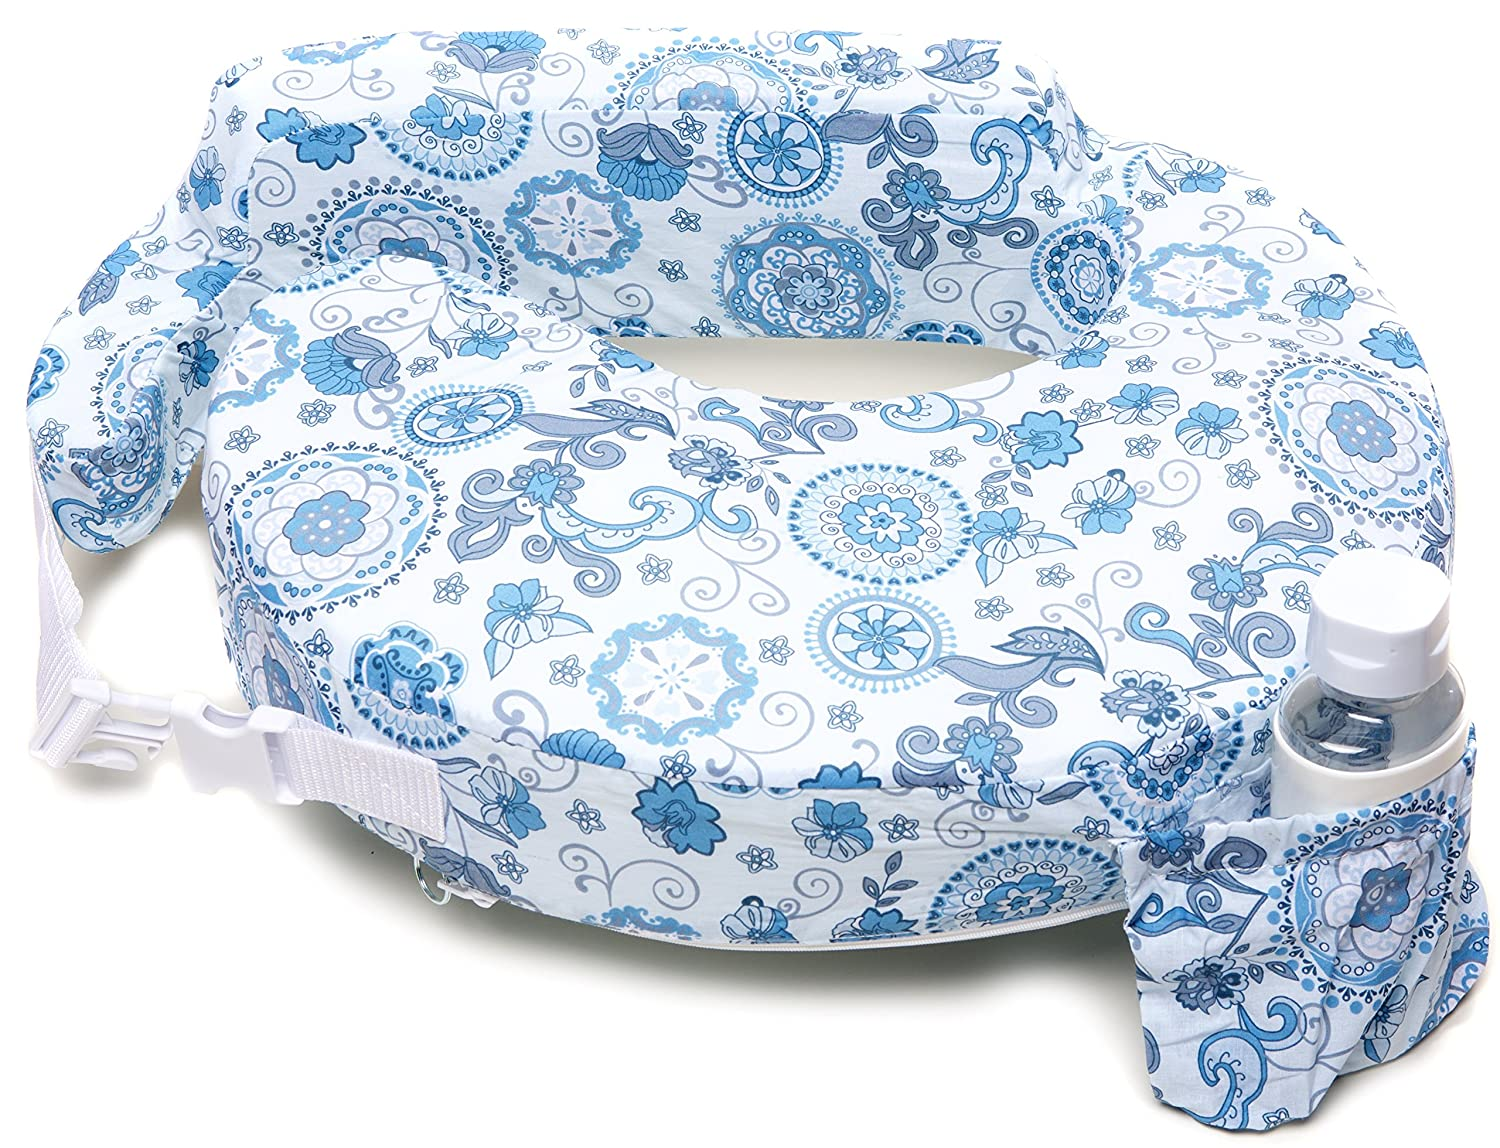 My Brest Friend Original Nursing Posture Pillow, Midnight Poppy Zenoff Products 422